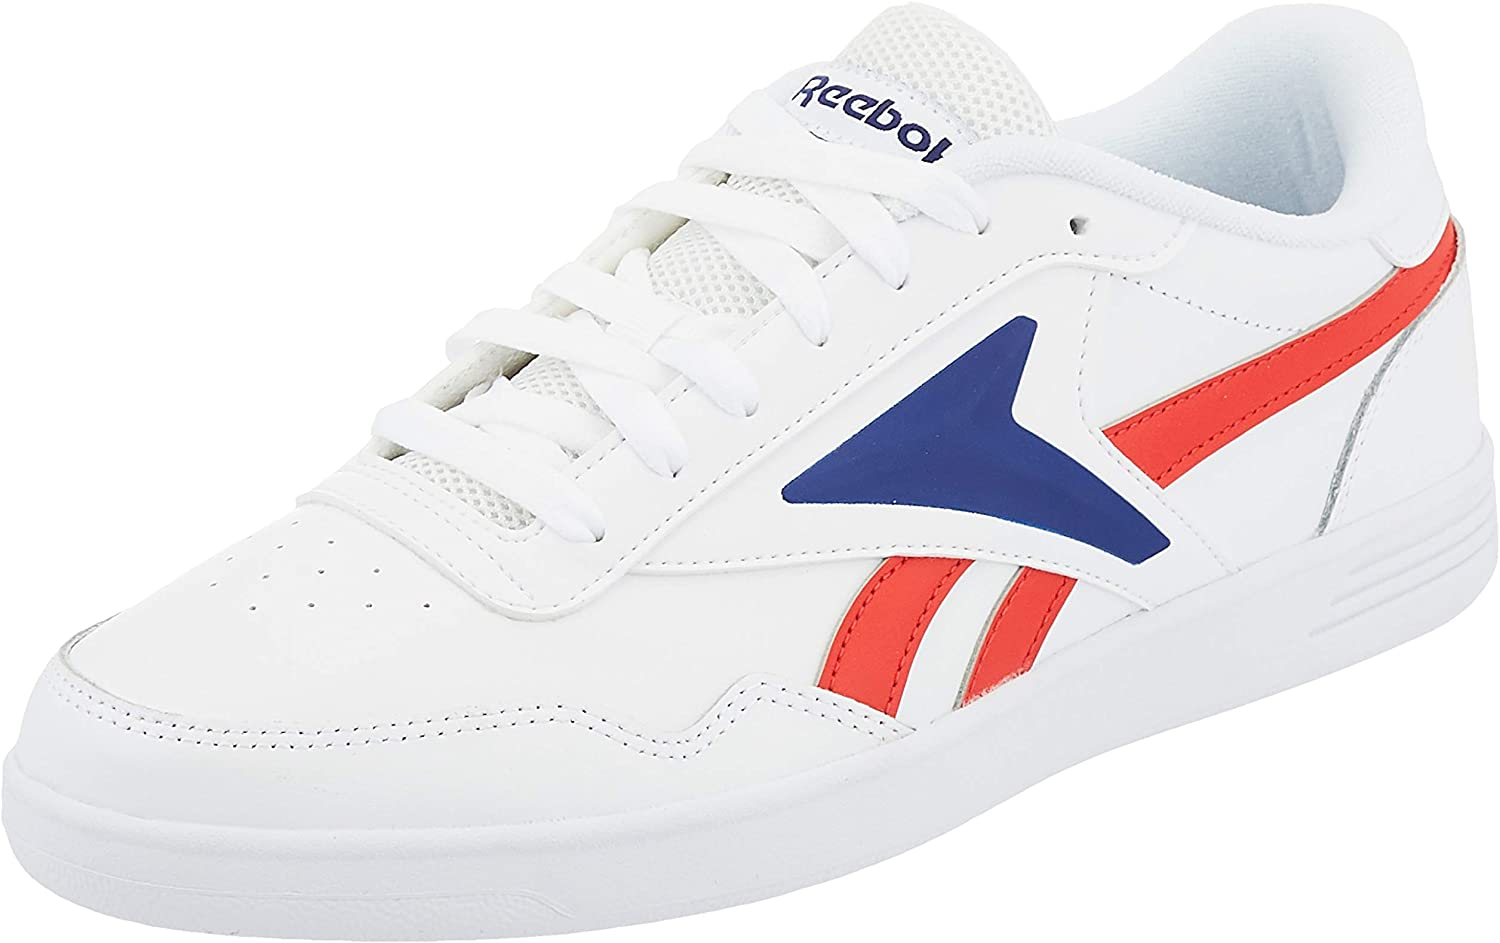 Reebok Men's Tennis Shoes